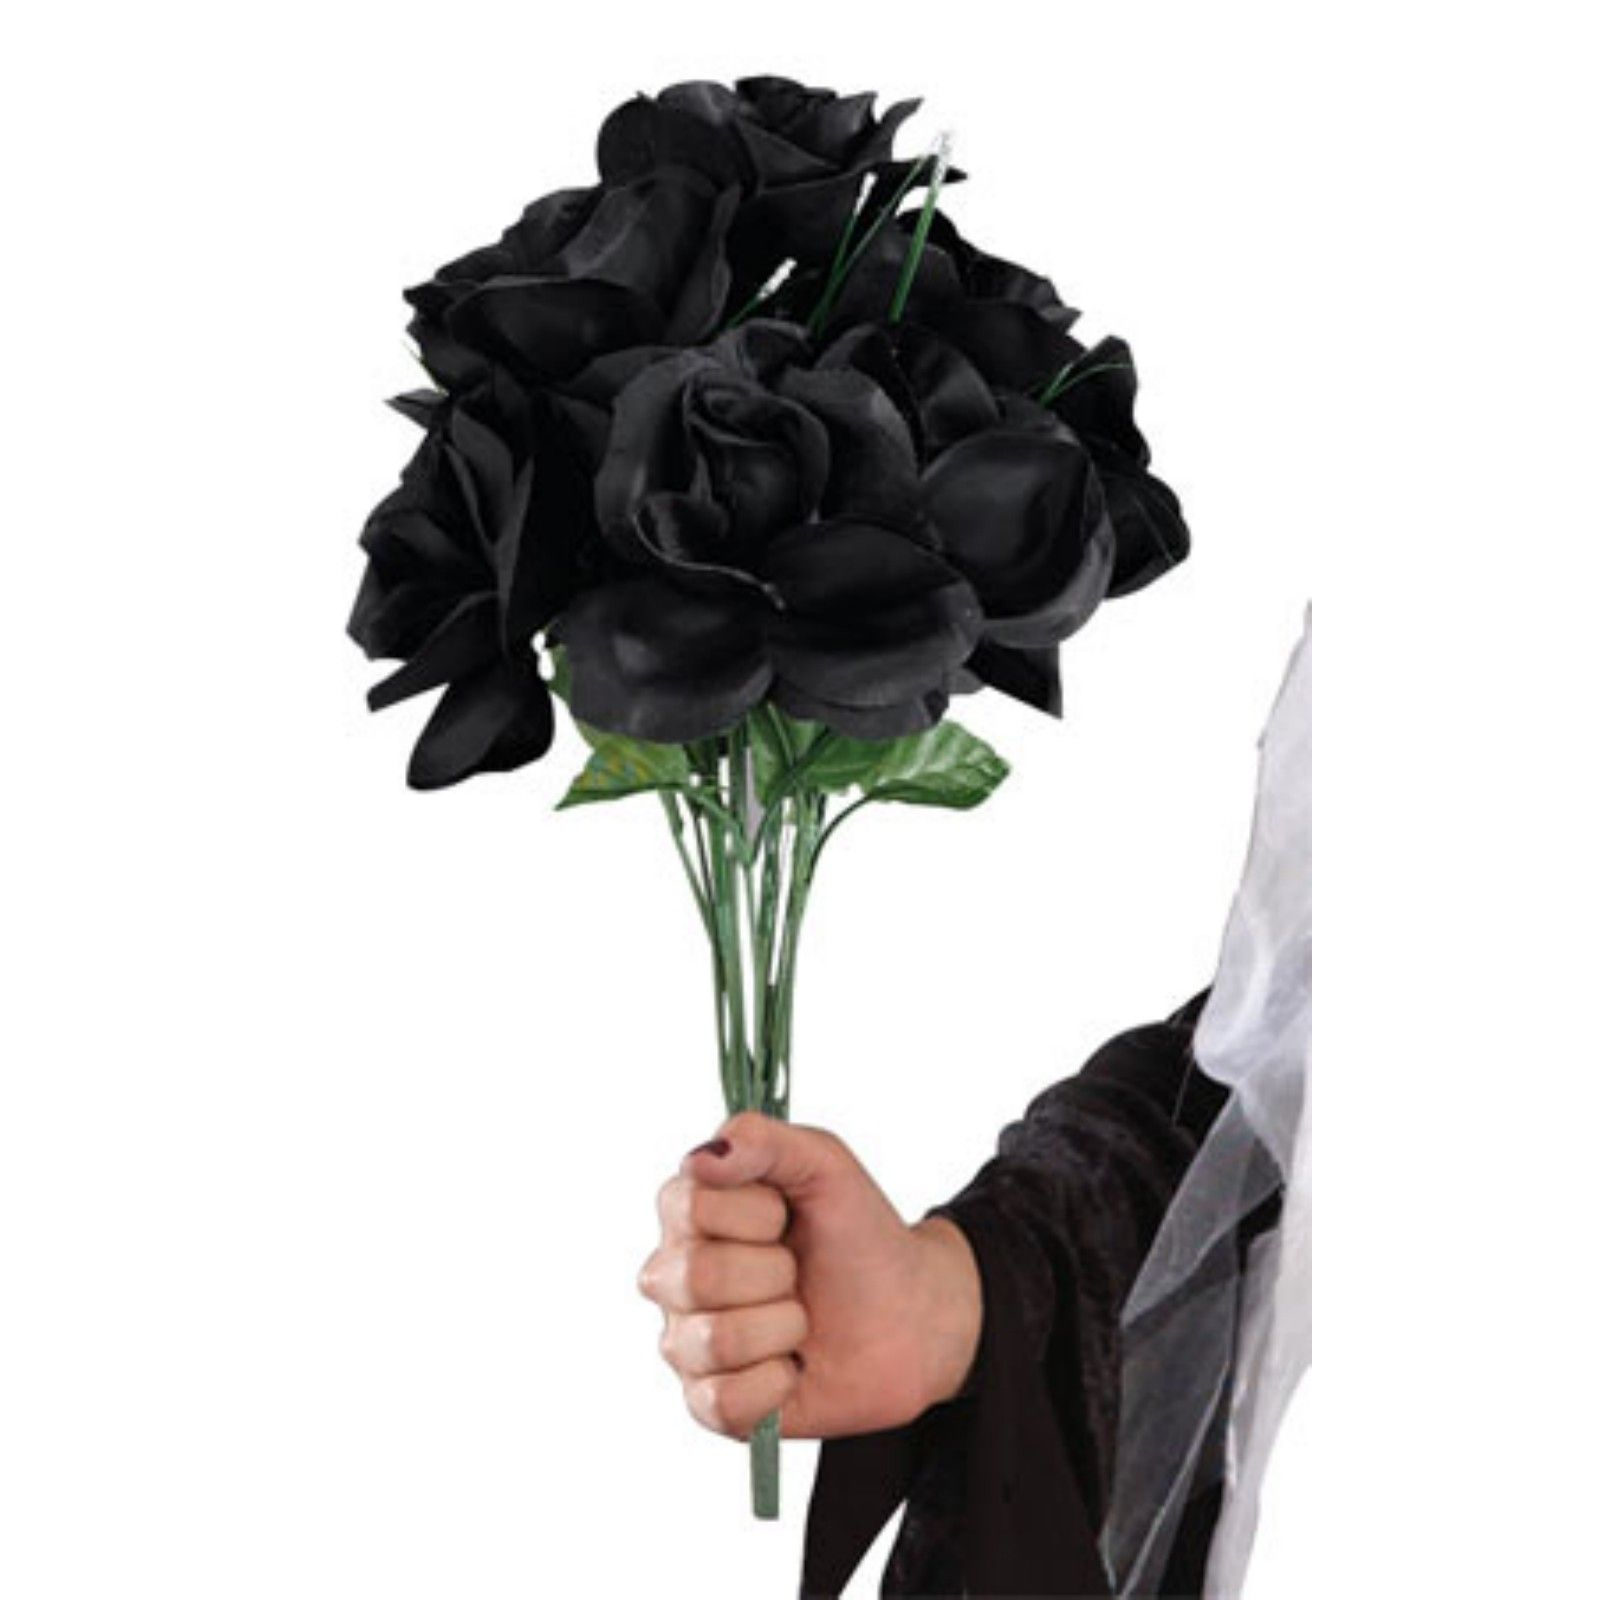 Black rose bouquet halloween my favorite pinterest rose black rose bouquet izmirmasajfo Choice Image